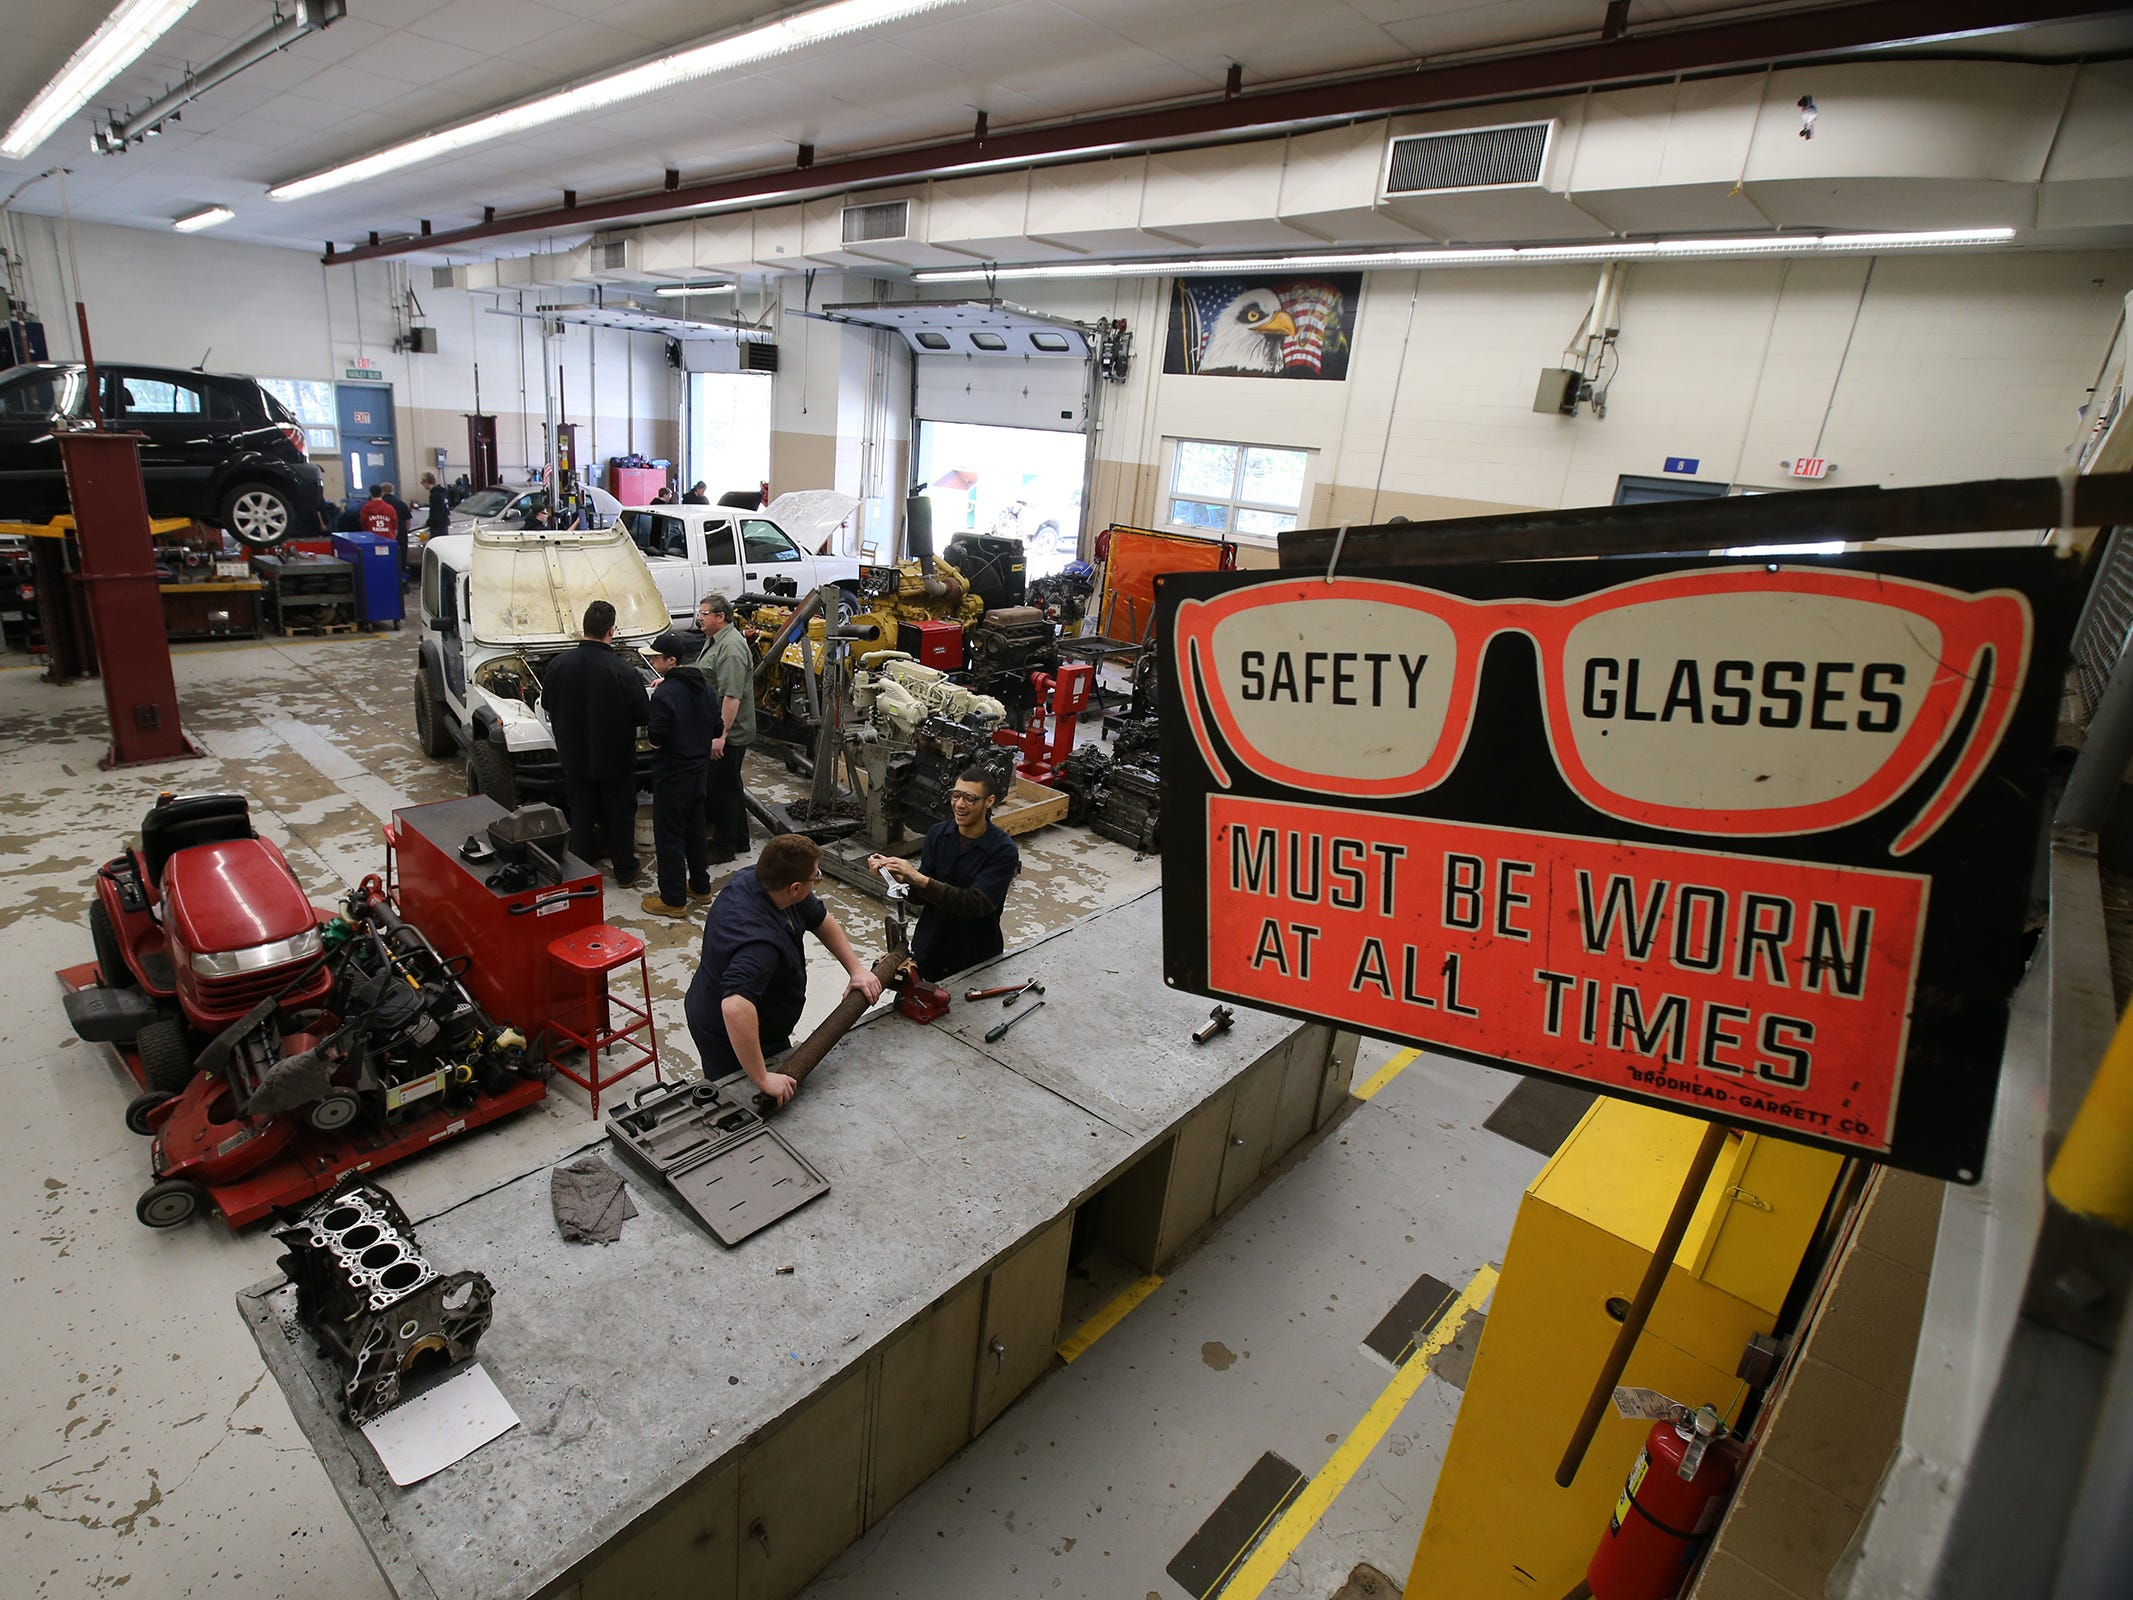 Students work in their diesel engine technology class at Ocean County Vocational Technical School in Jackson, NJ Thursday, April 4, 2019.